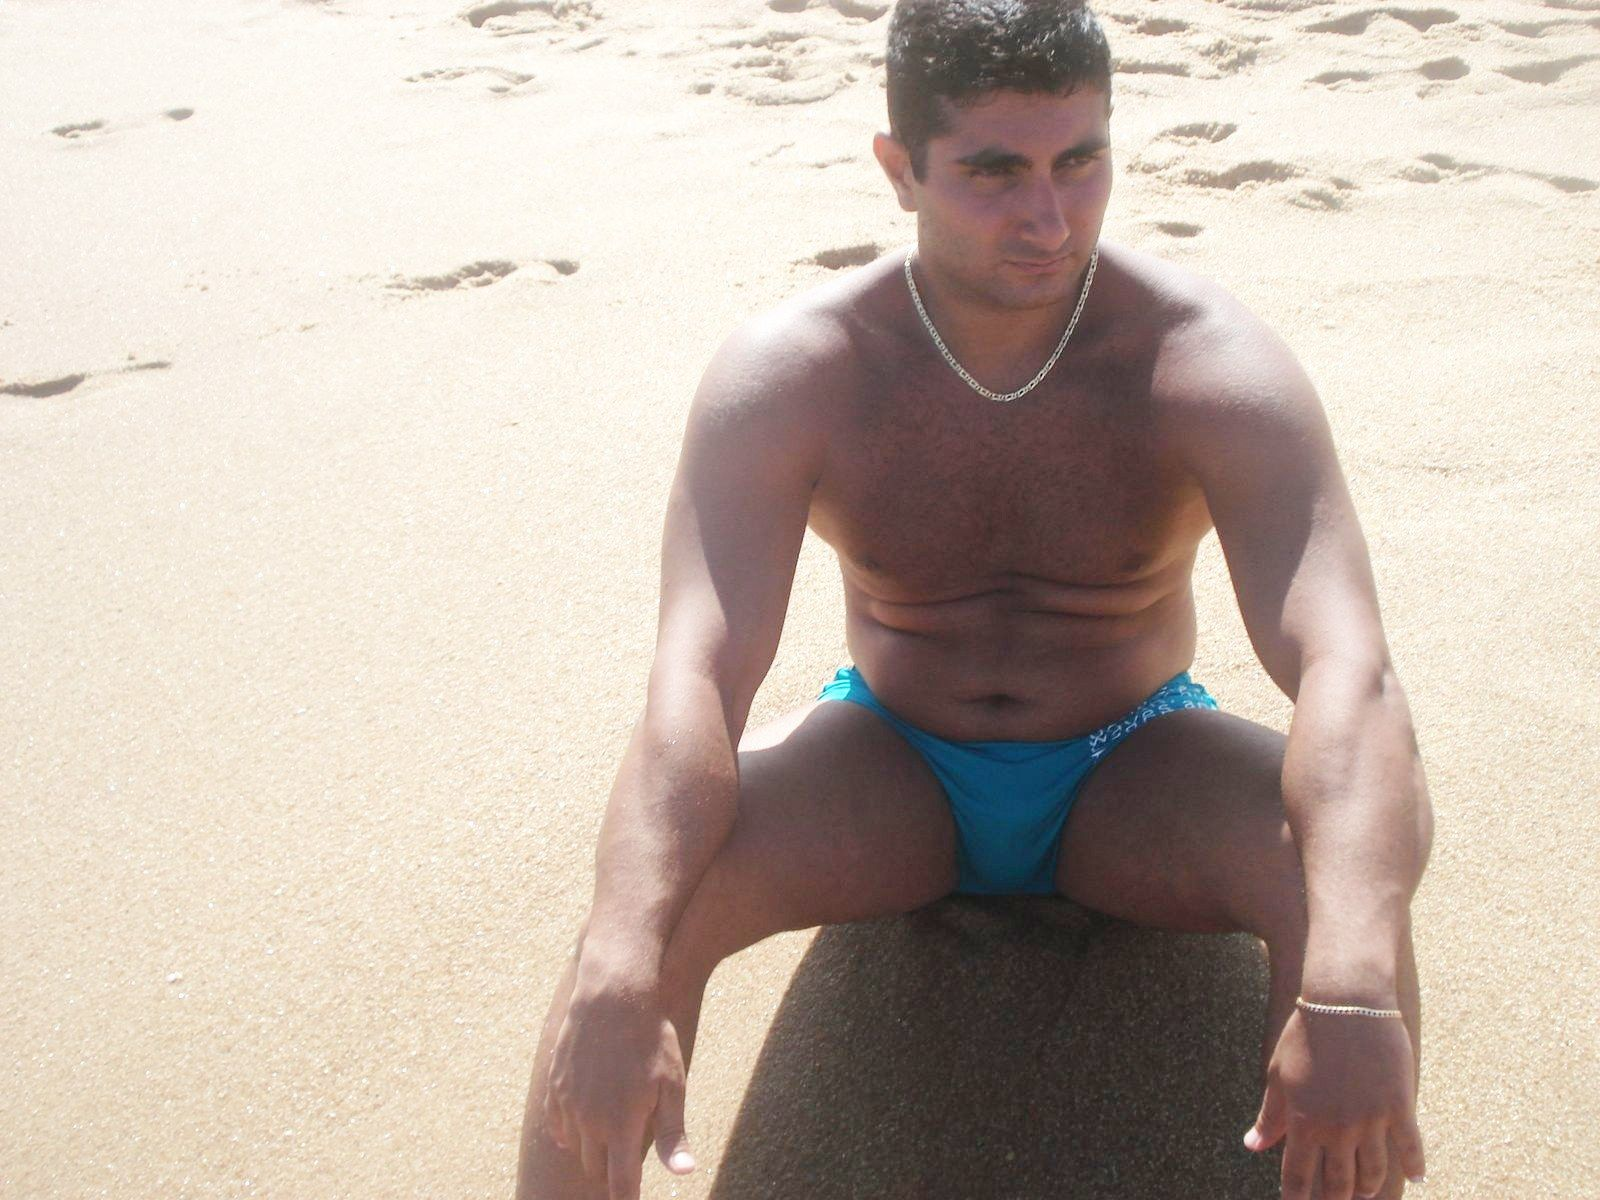 Amateur Beach Boys In Speedos